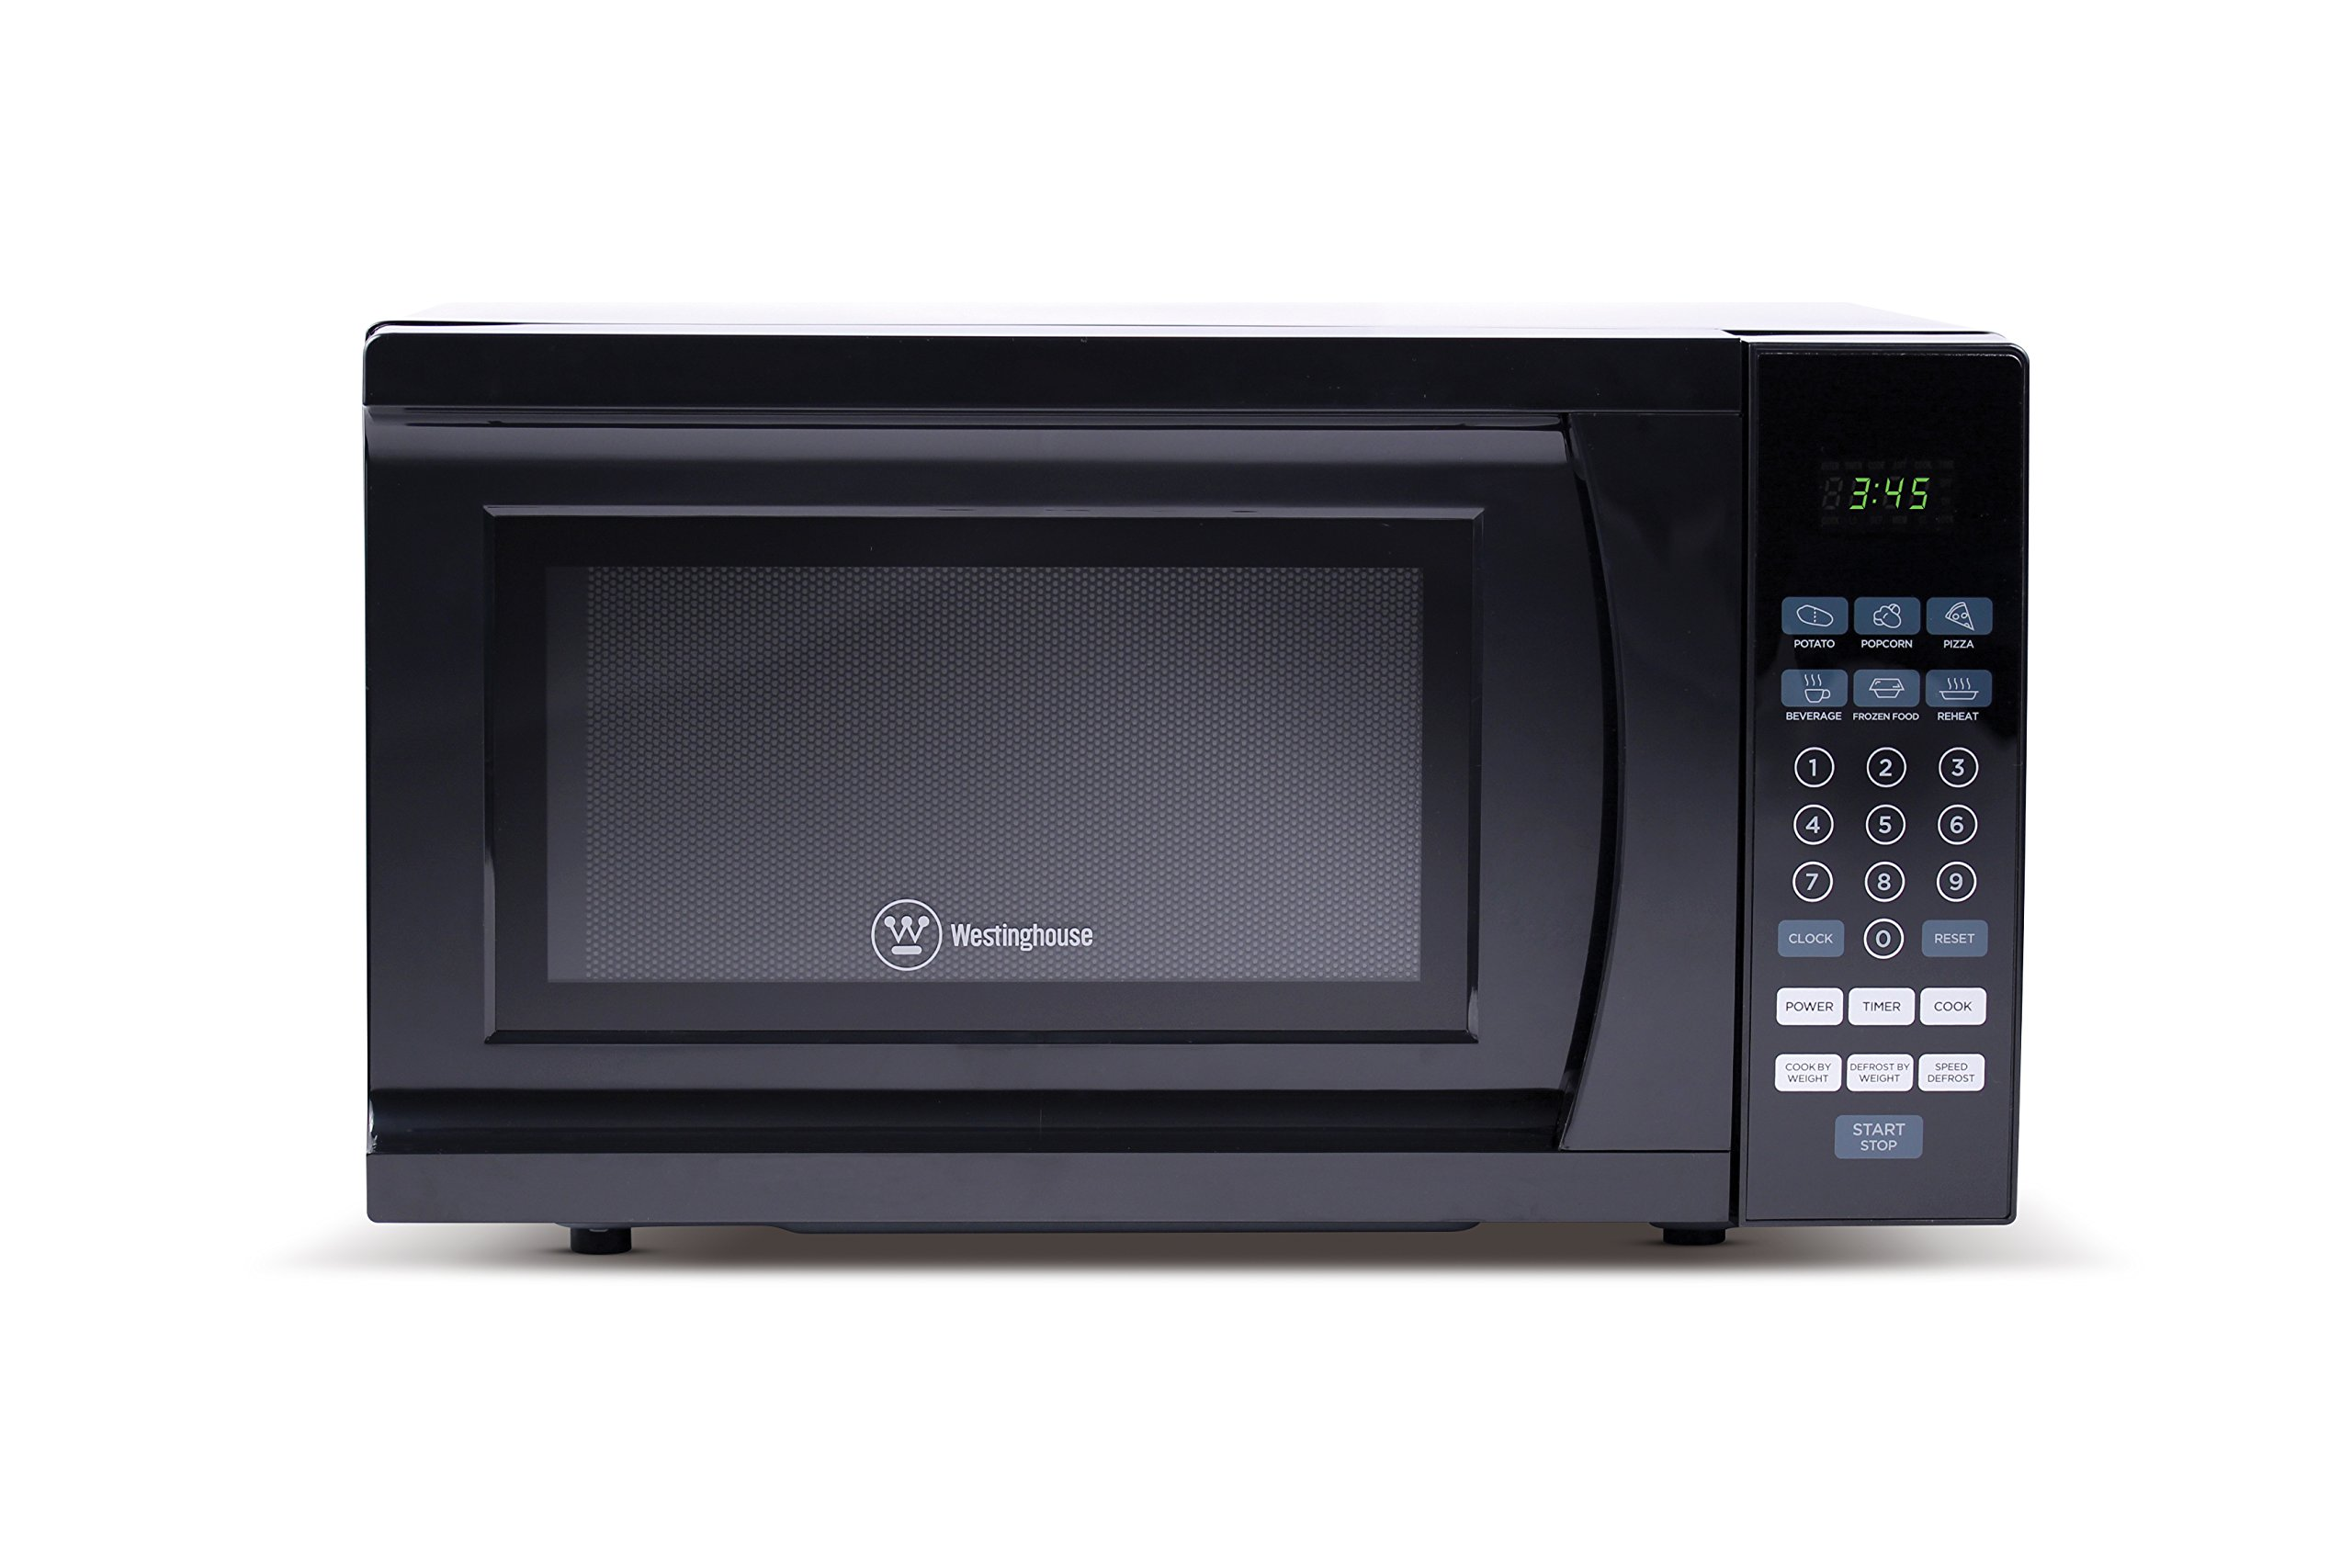 Westinghouse WCM770B 700 Watt Counter Top Microwave Oven, 0.7 Cubic Feet, Black Cabinet by Westinghouse (Image #3)